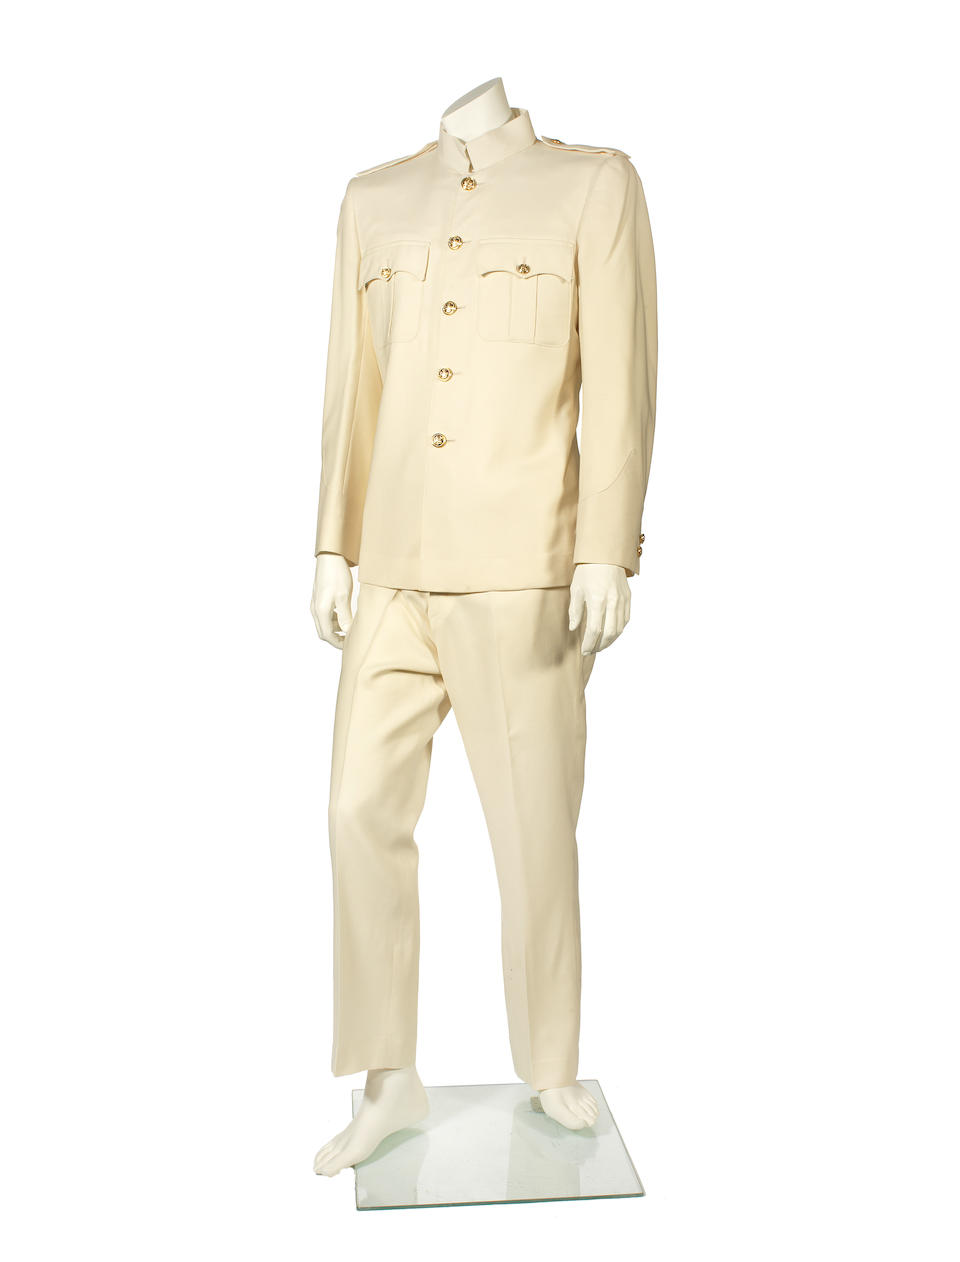 The cream two-piece suit worn by Robbie Williams in the music video for the single Radio, 2004,